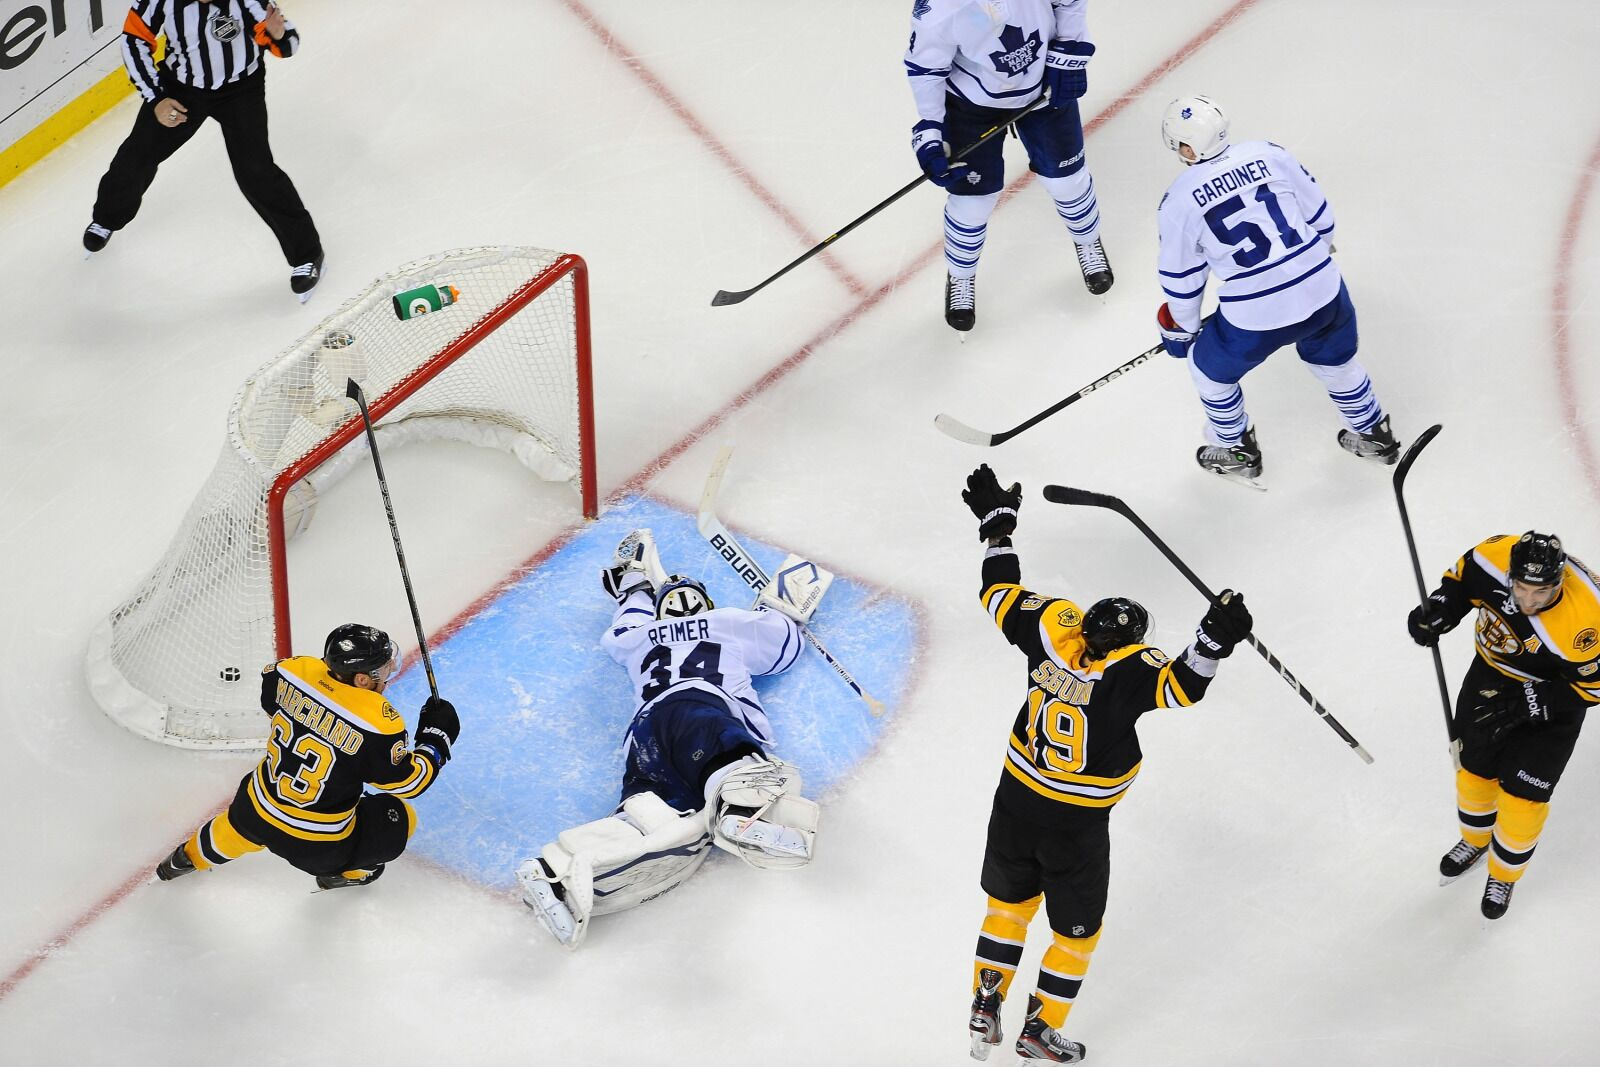 168684893-toronto-maple-leafs-v-boston-bruins-game-seven.jpg